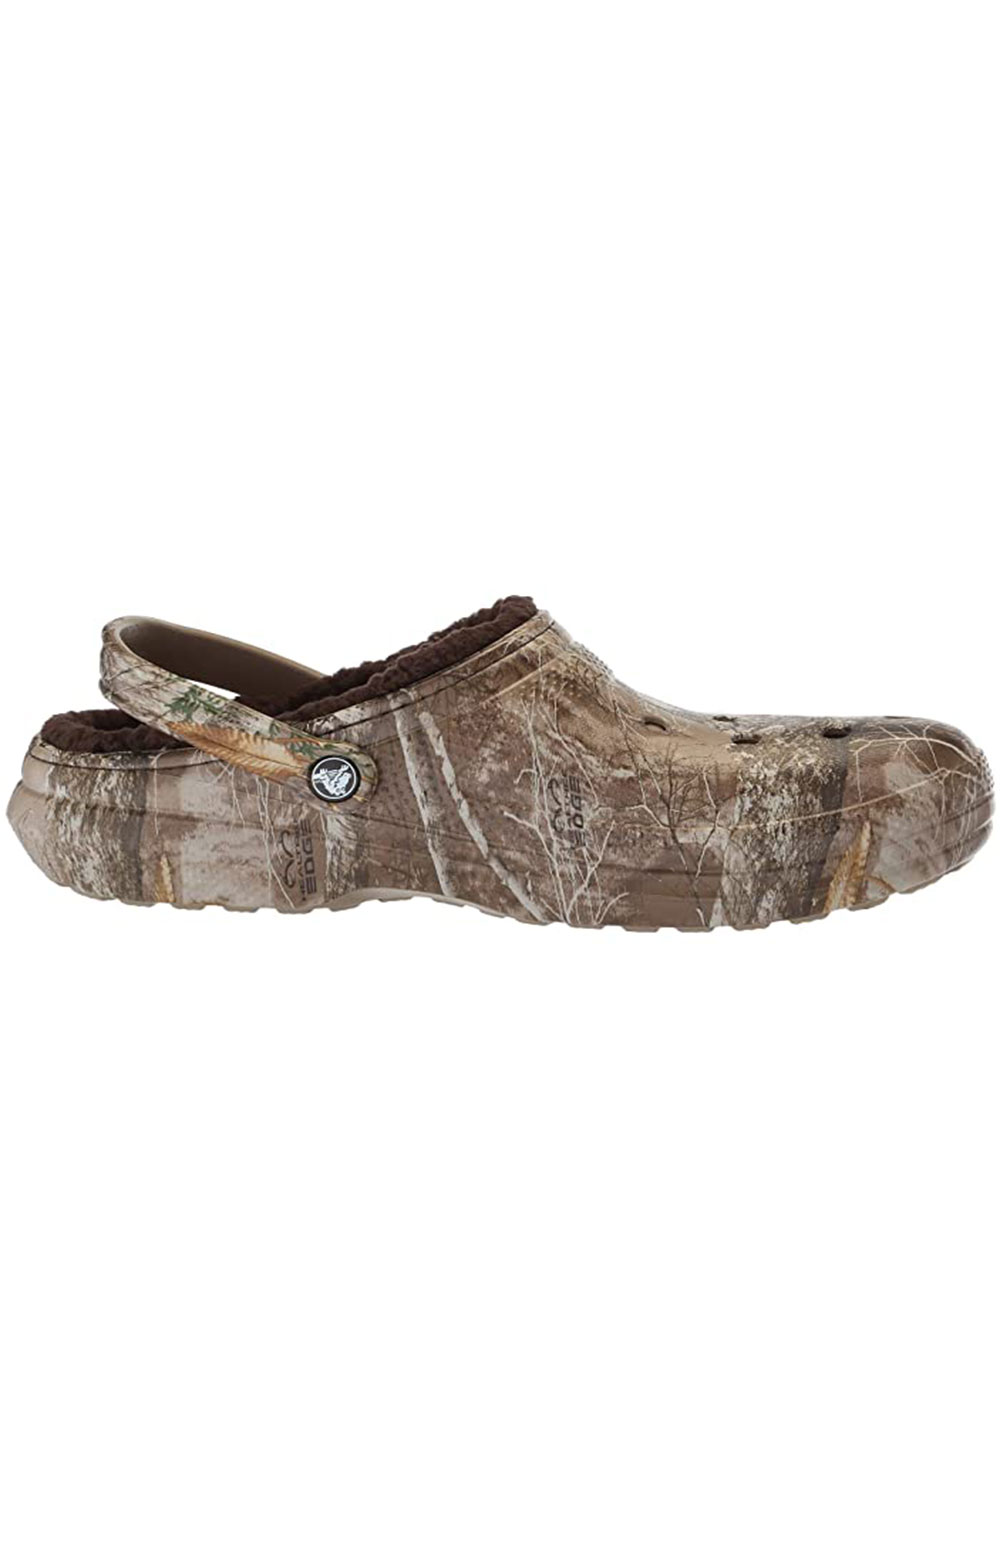 Classic Lined Realtree Edge Clogs - Chocolate/Chocolate